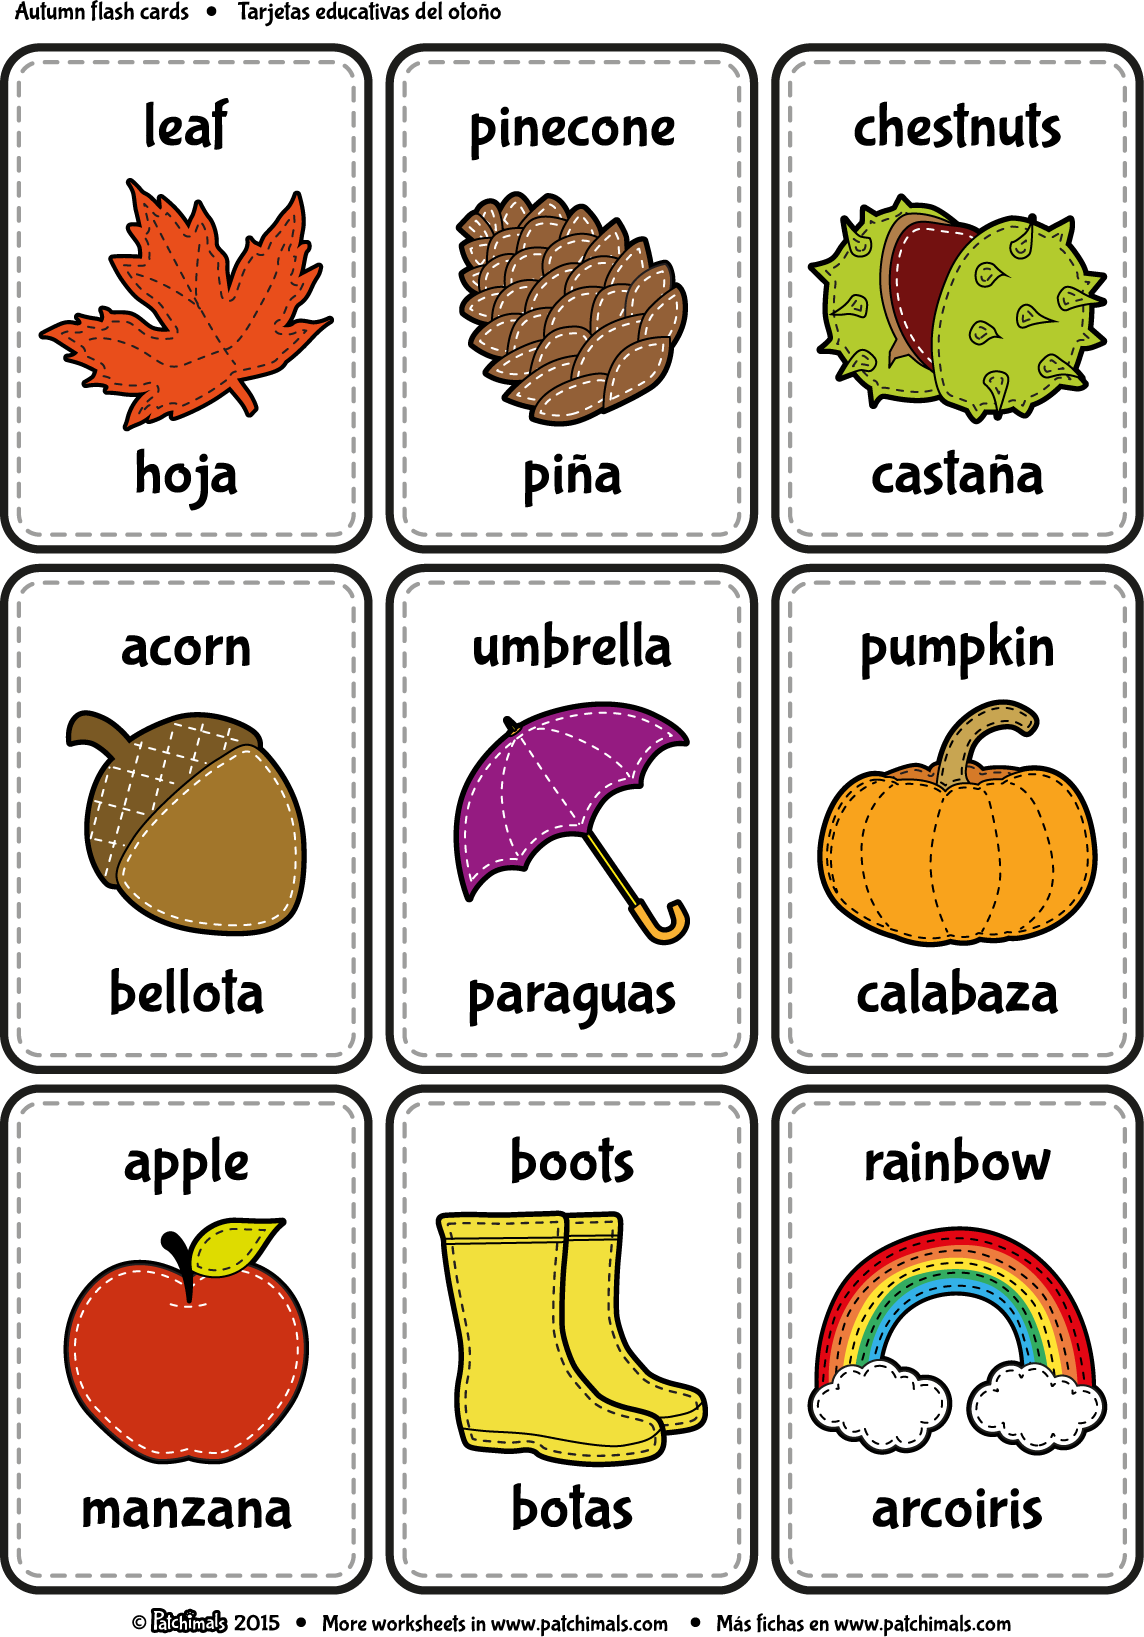 photograph about Spanish to English Flashcards With Pictures Printable referred to as Patchimals - Useful and cultural contents for small children